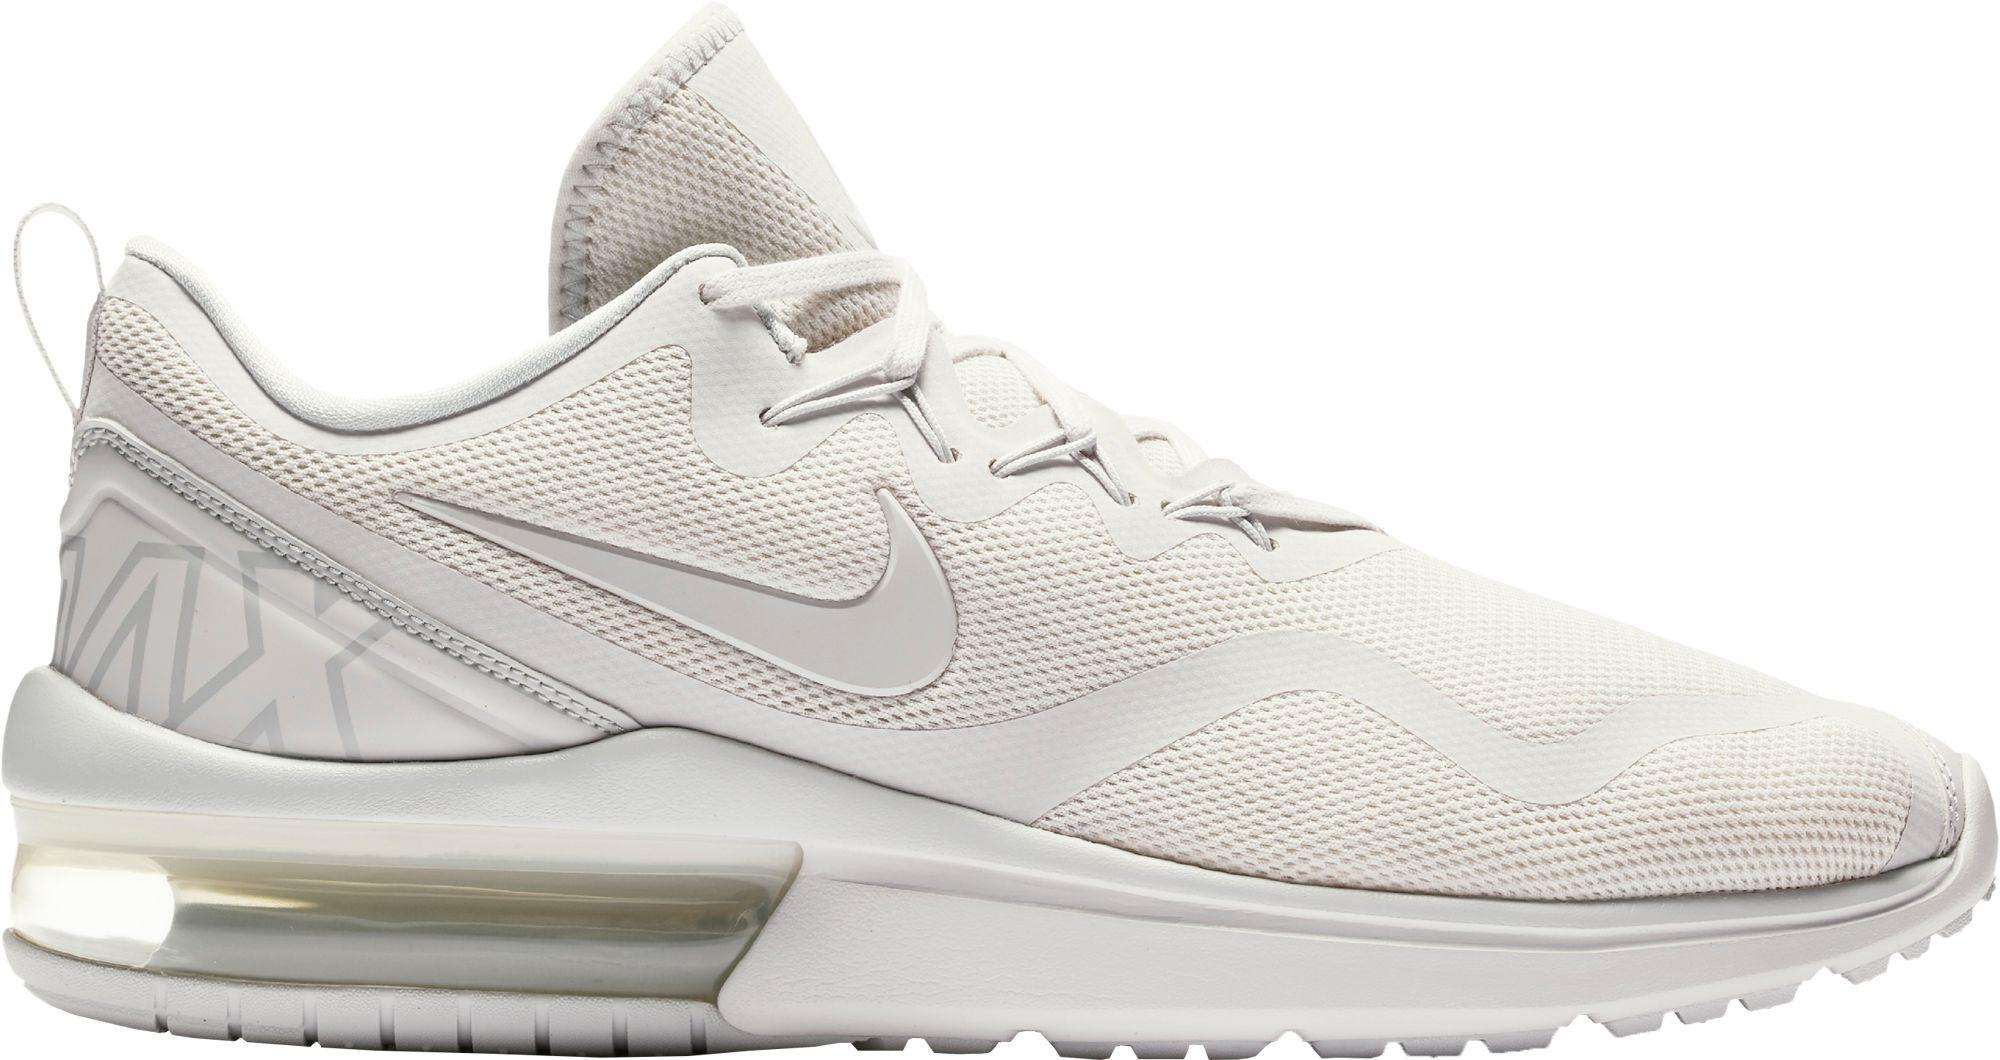 89d625c3a2b Lyst - Nike Air Max Fury Running Shoes in White for Men